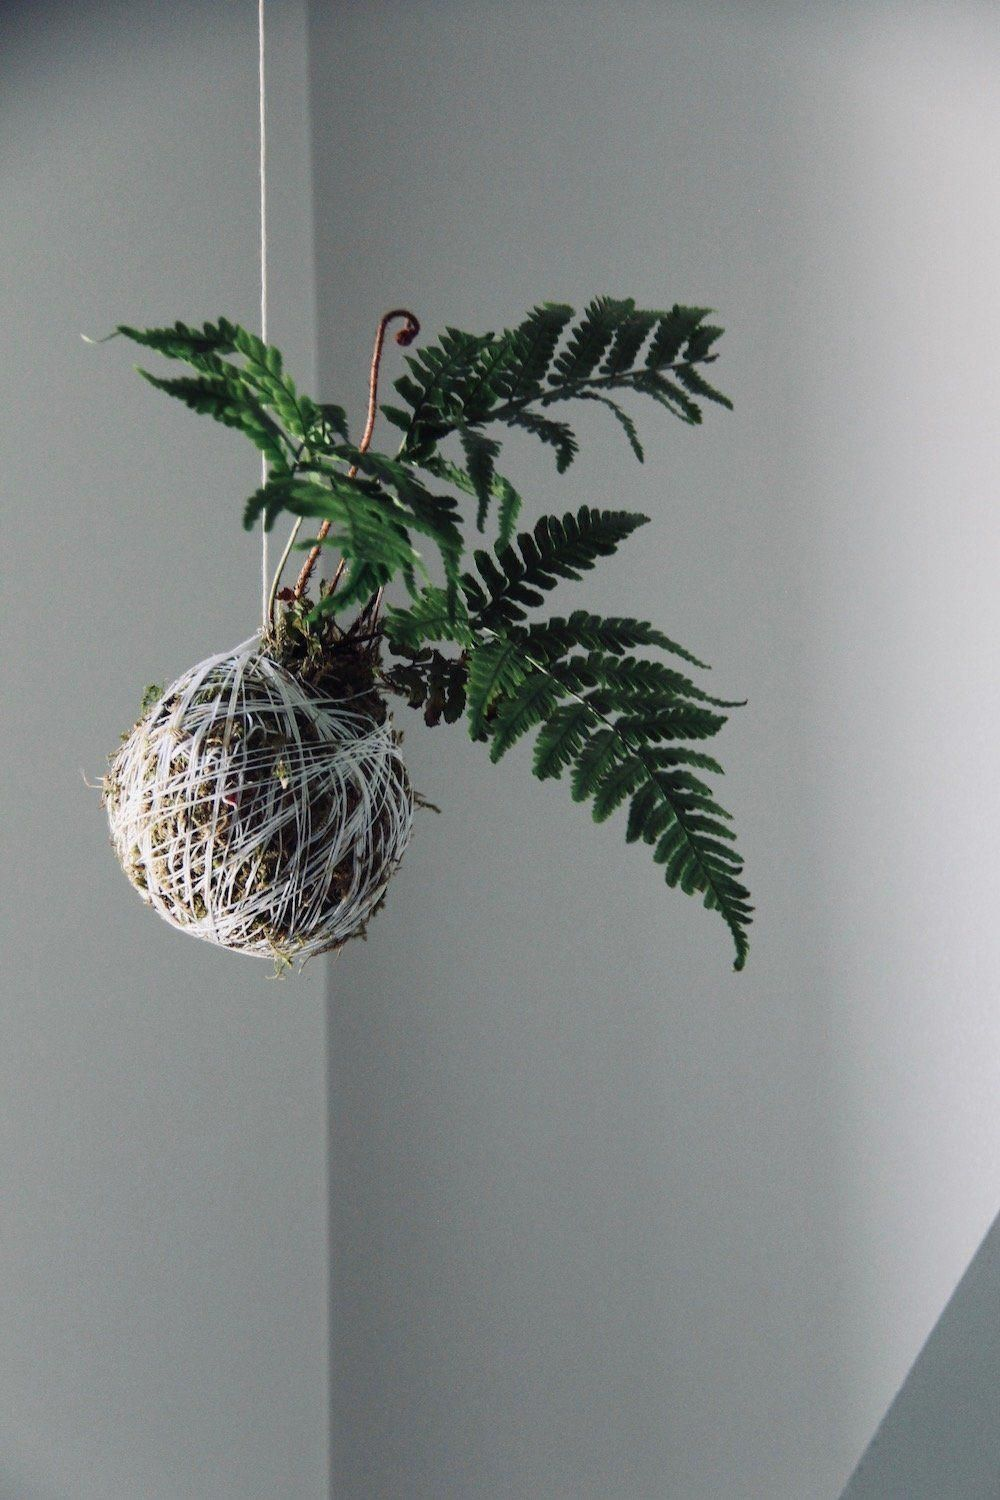 SO making this fern kokedama this weekend! I love hanging string gardens and this is perfect for my ensuite bathroom #houseplants #stringgardens #kokedama #bathroomplants #Kokedamascolgantes